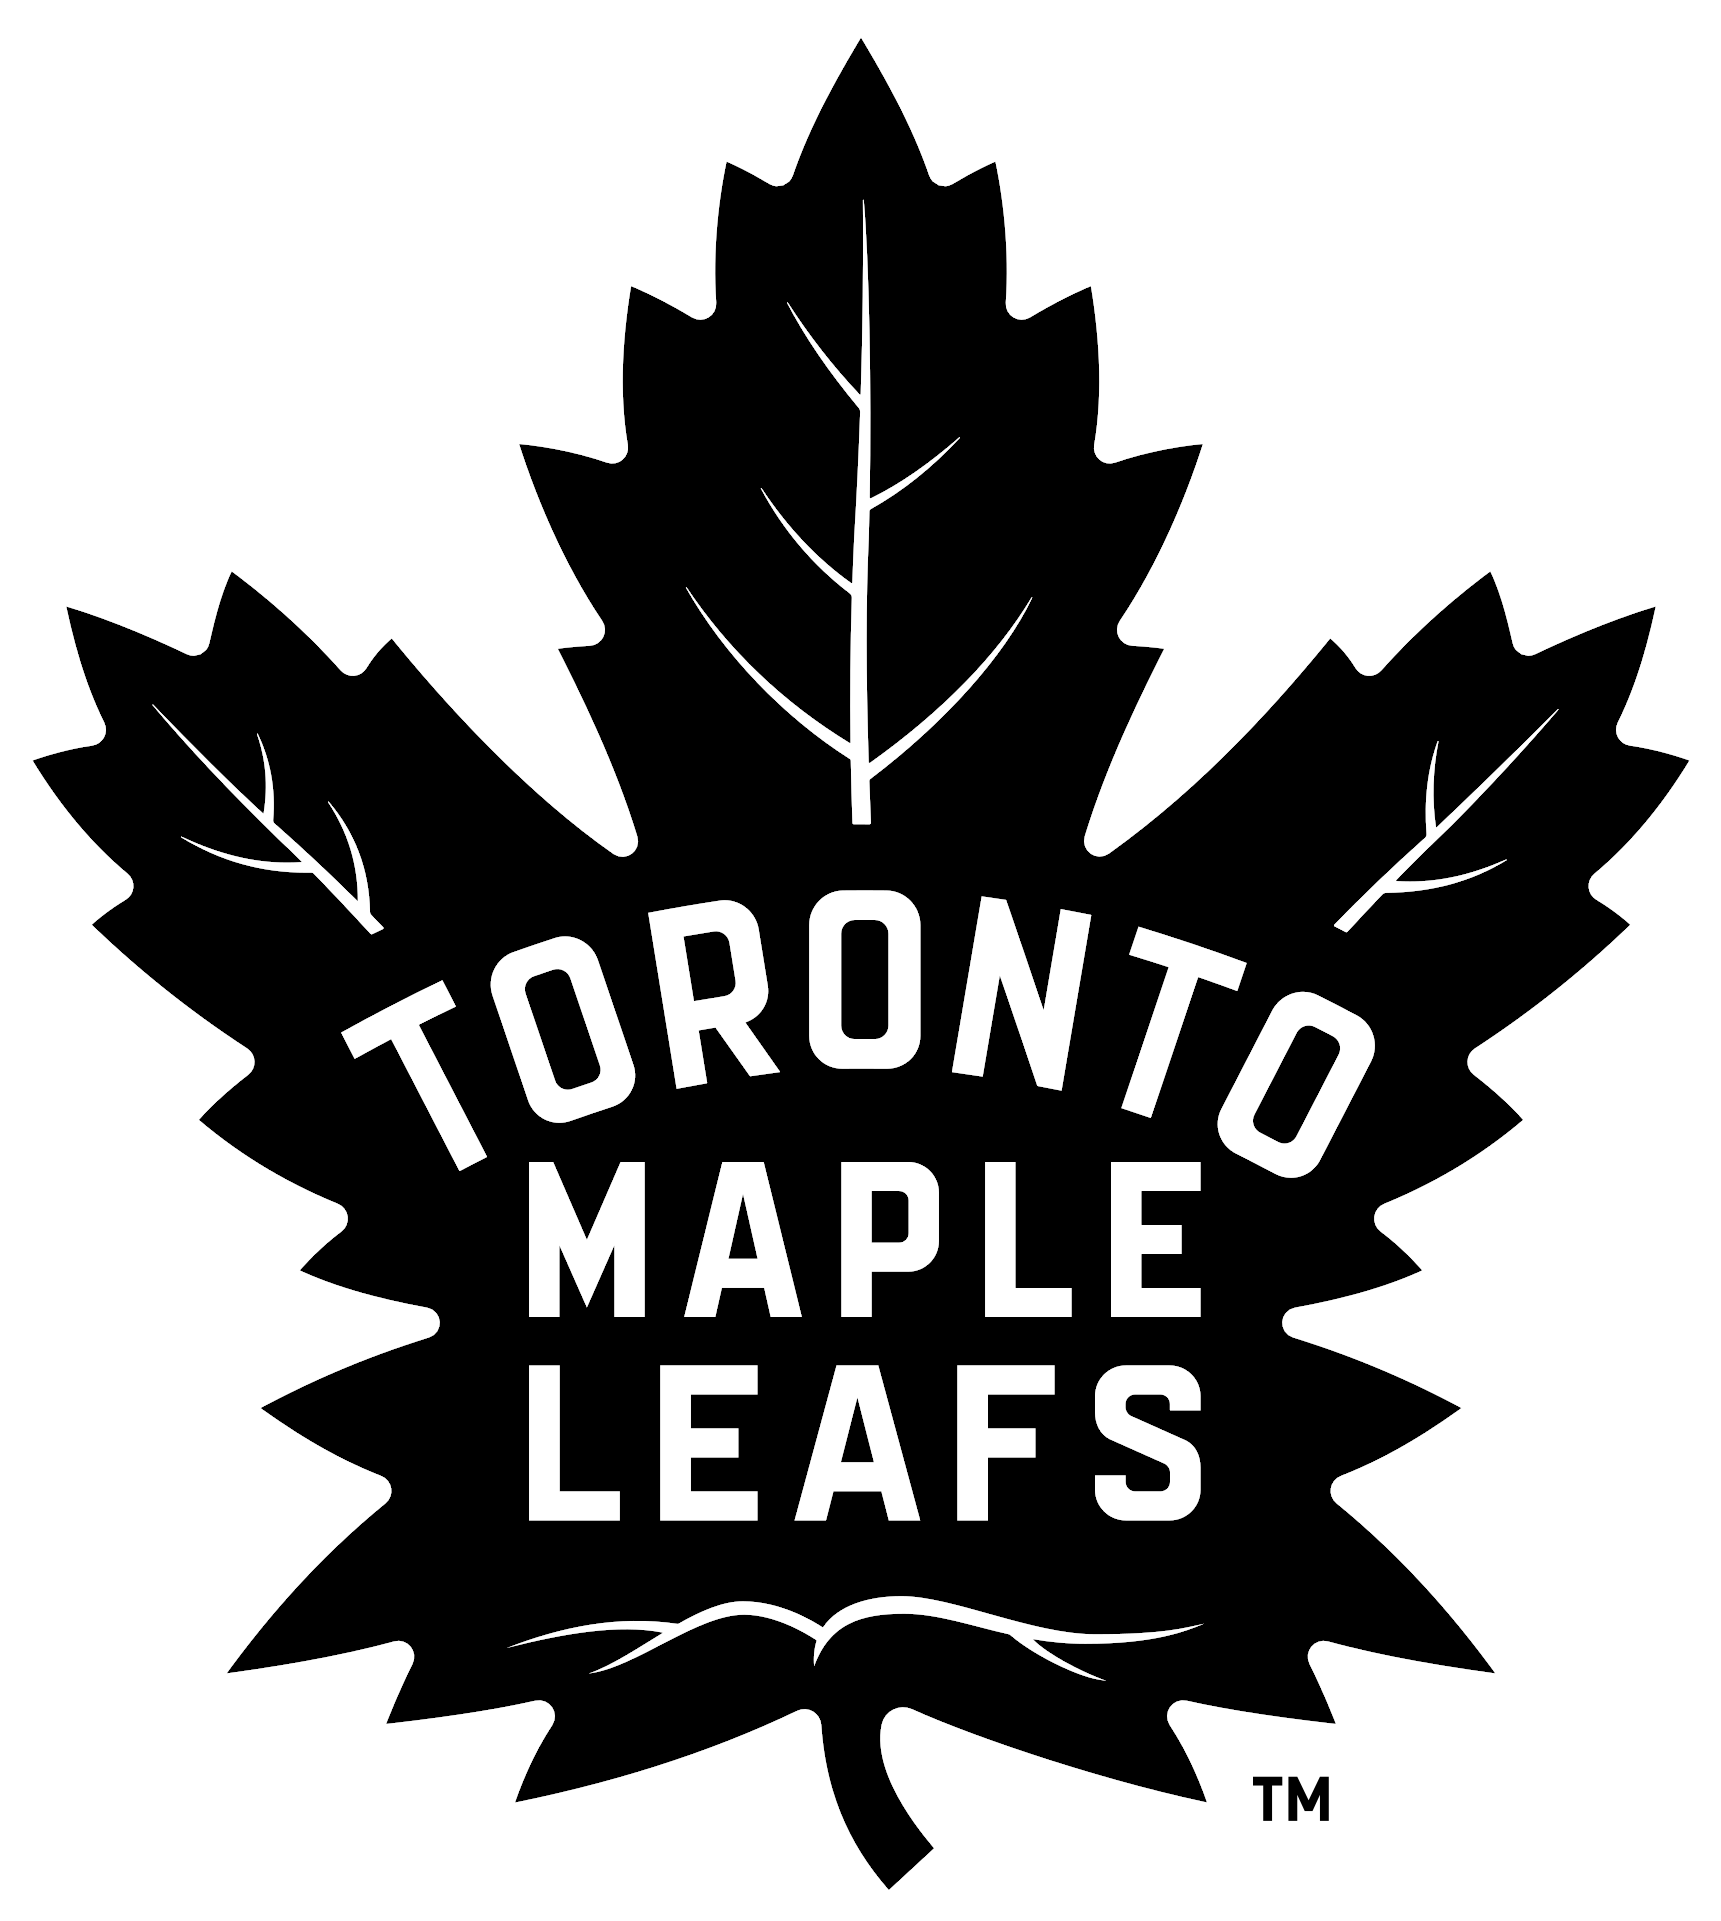 Hd Maple Leafs Logo Png Toronto Maple 1151111 Png Images Pngio